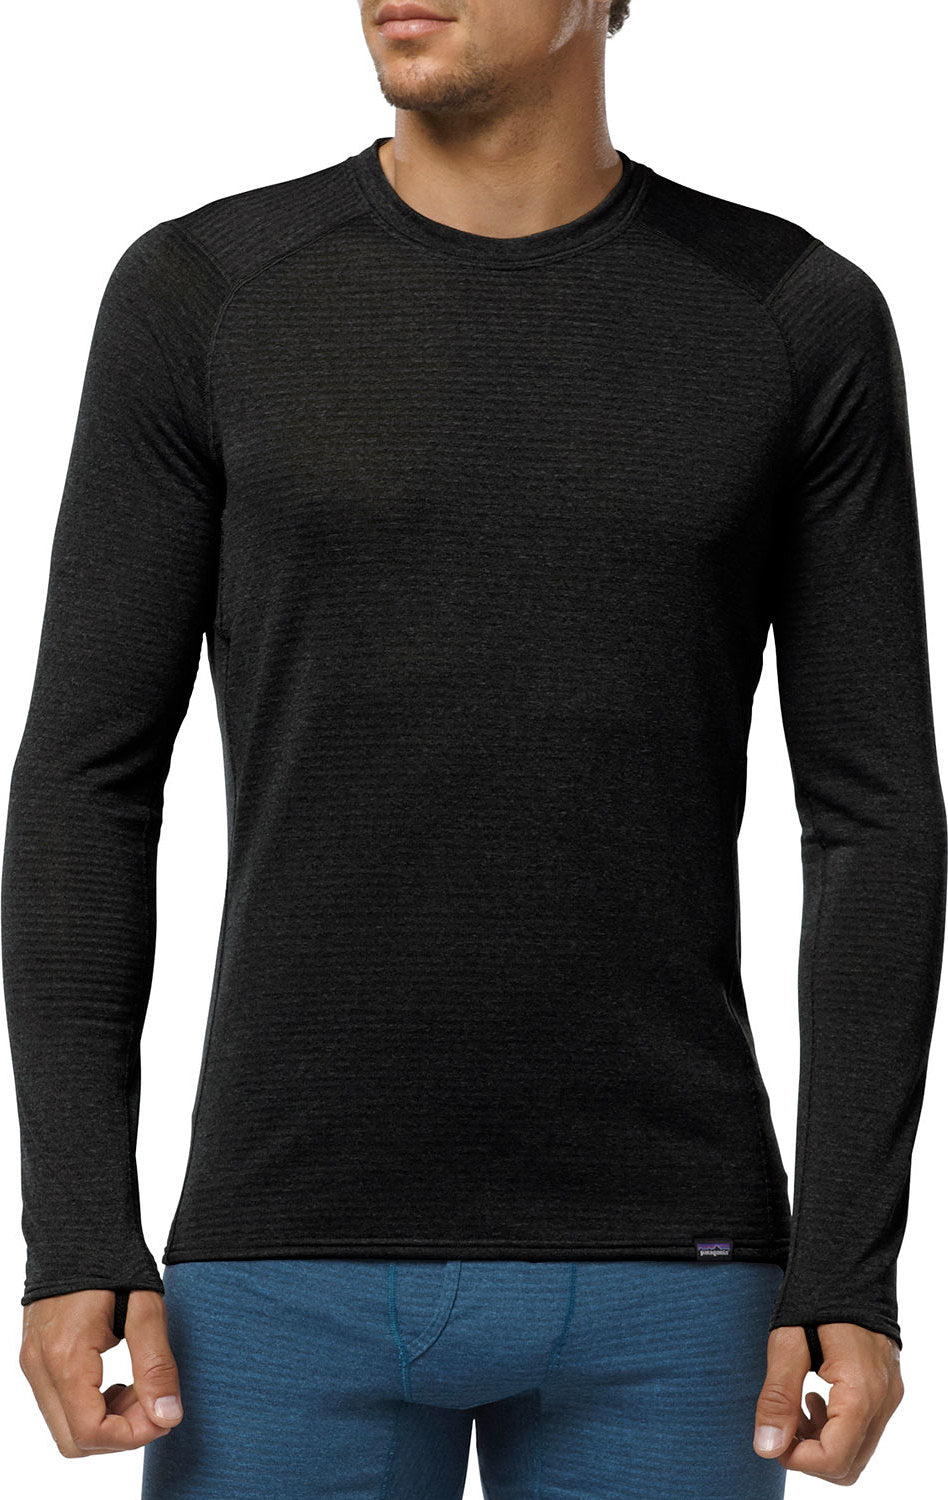 a3271c567 Patagonia Capilene Thermal Weight Crew - Men's